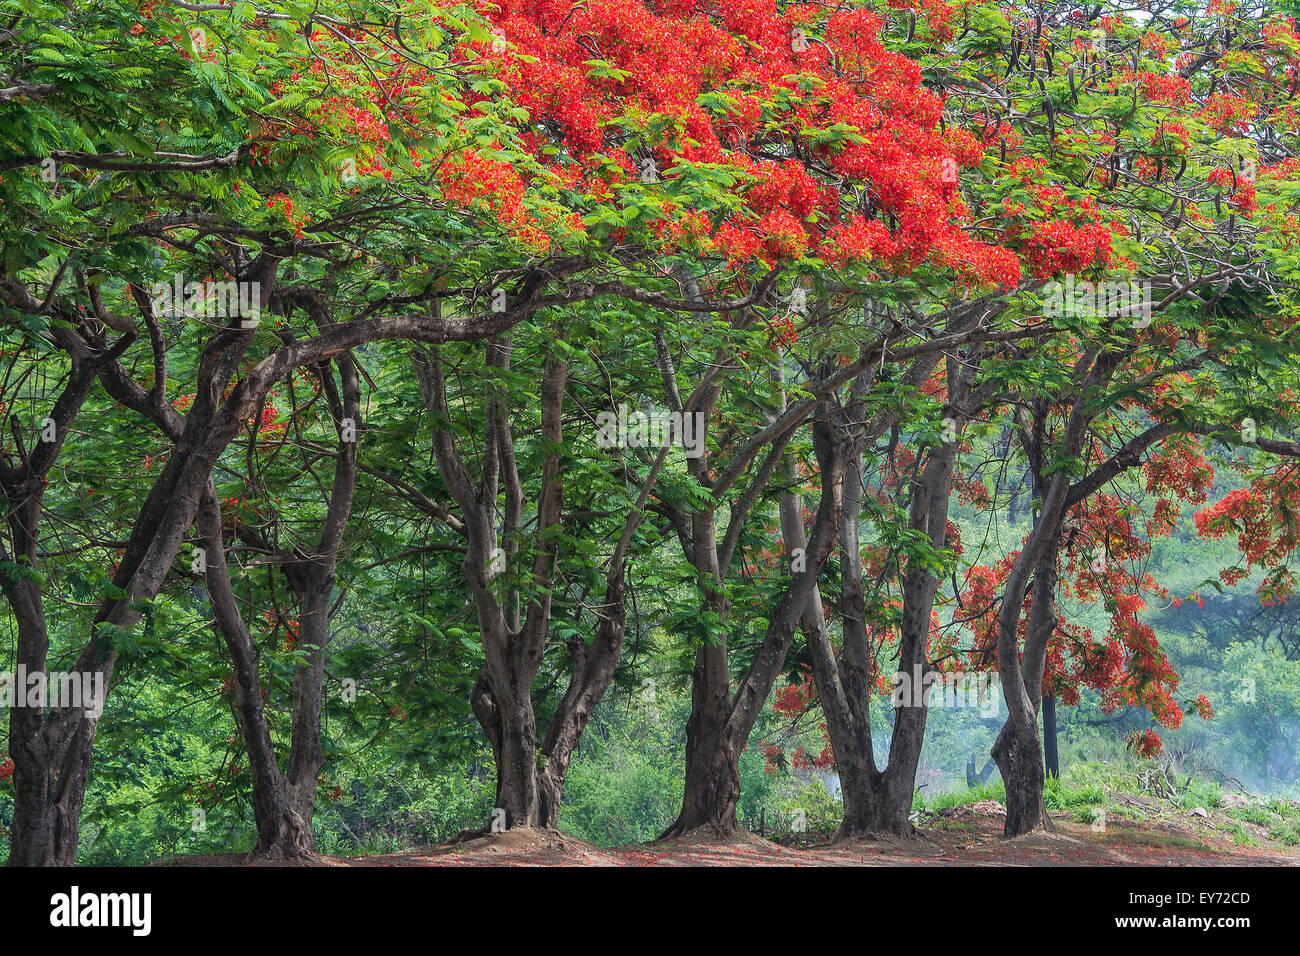 Alley of Royal Poincianas, also called Flame Trees, Africa - Stock Image